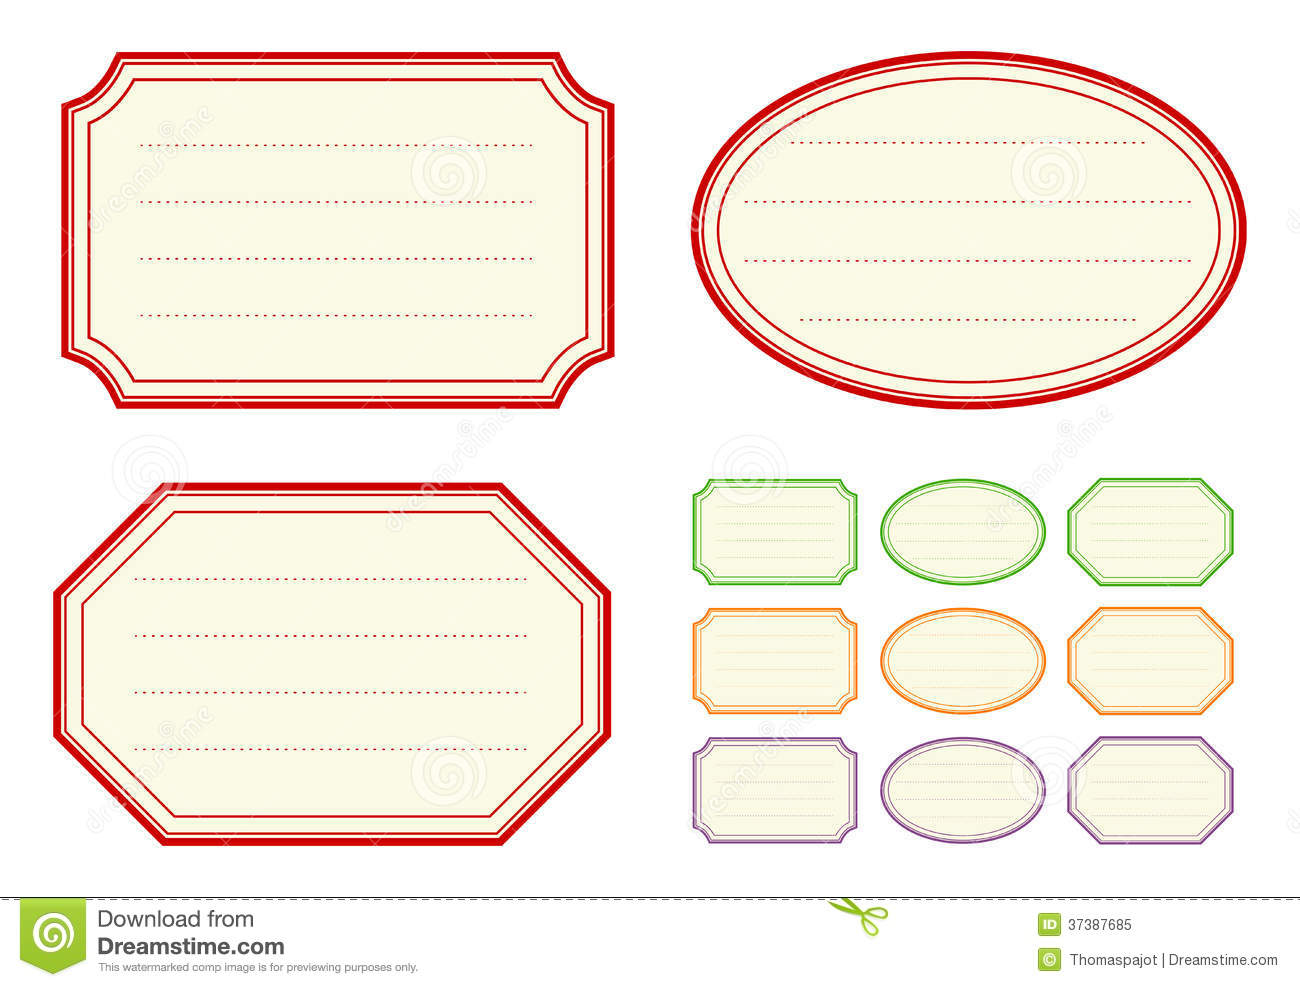 En zg n iirler en anlaml s zler rceler label templates for Z label templates